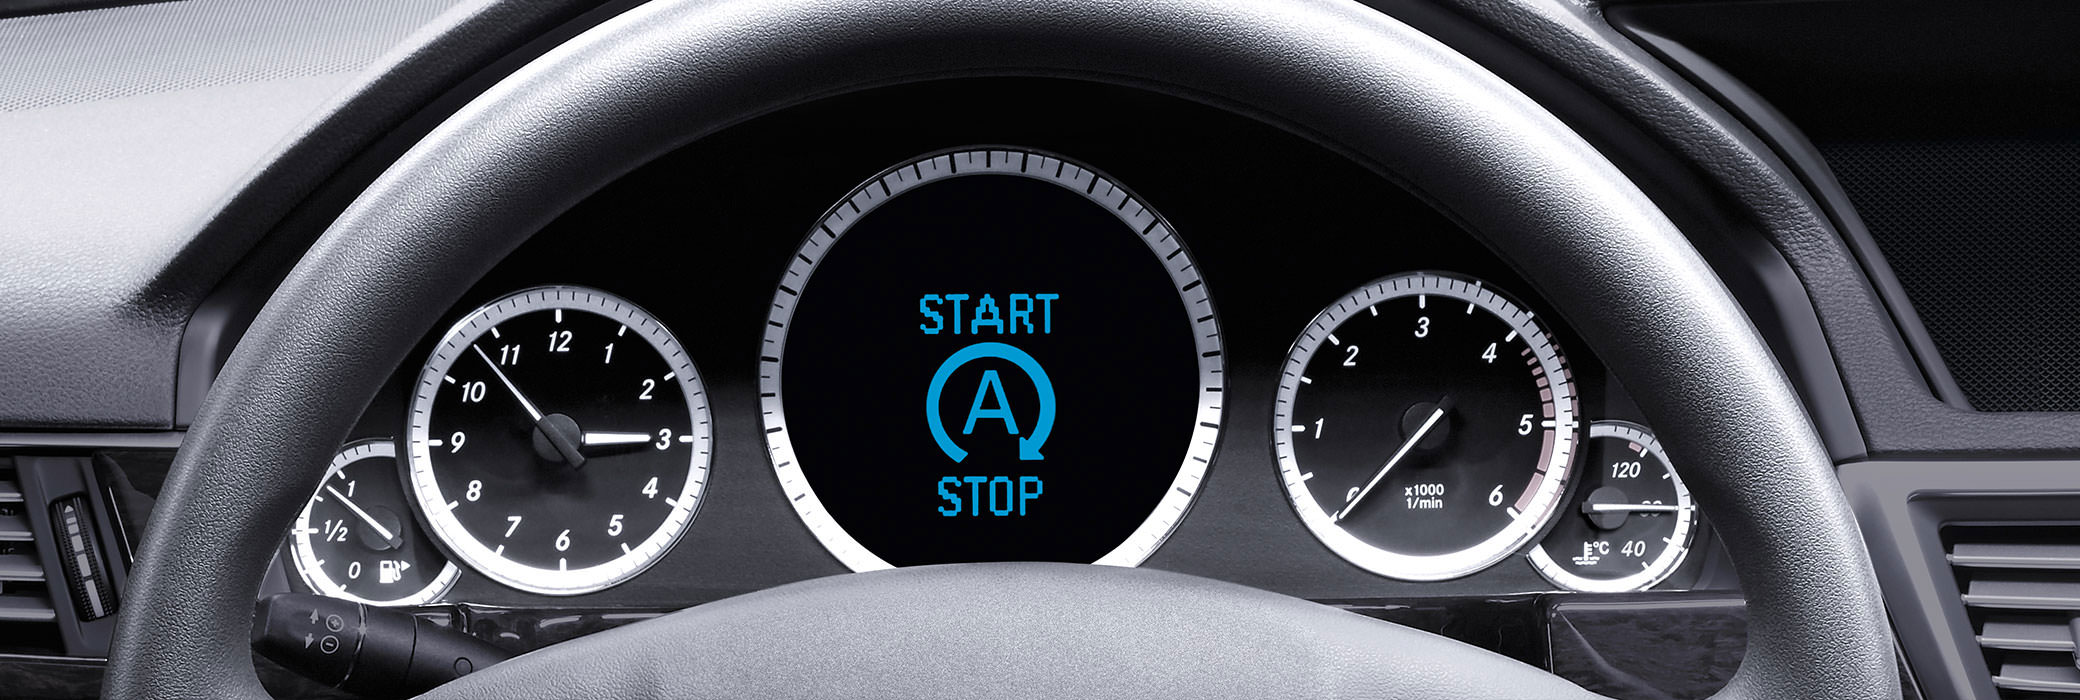 The dashboard of a car with the clock on the left side, the speed indicator on the right side and a start stop sign in the middle